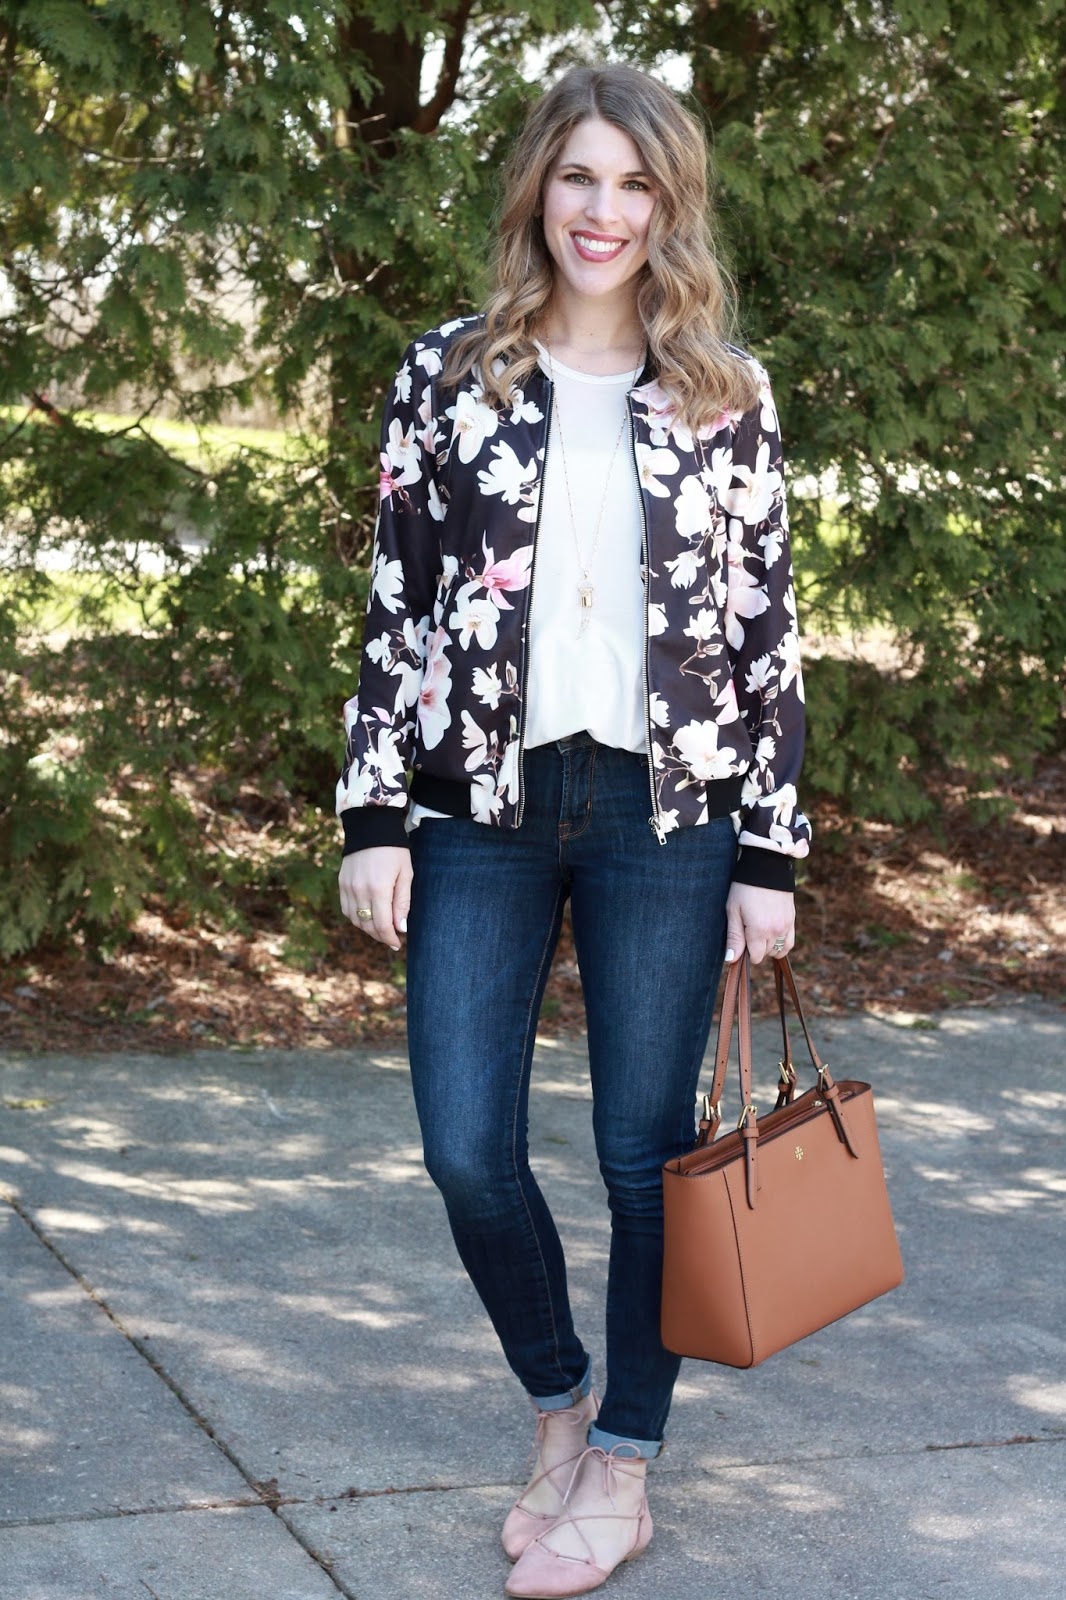 d25af742ebc5 I do deClaire: Floral Bomber Jacket